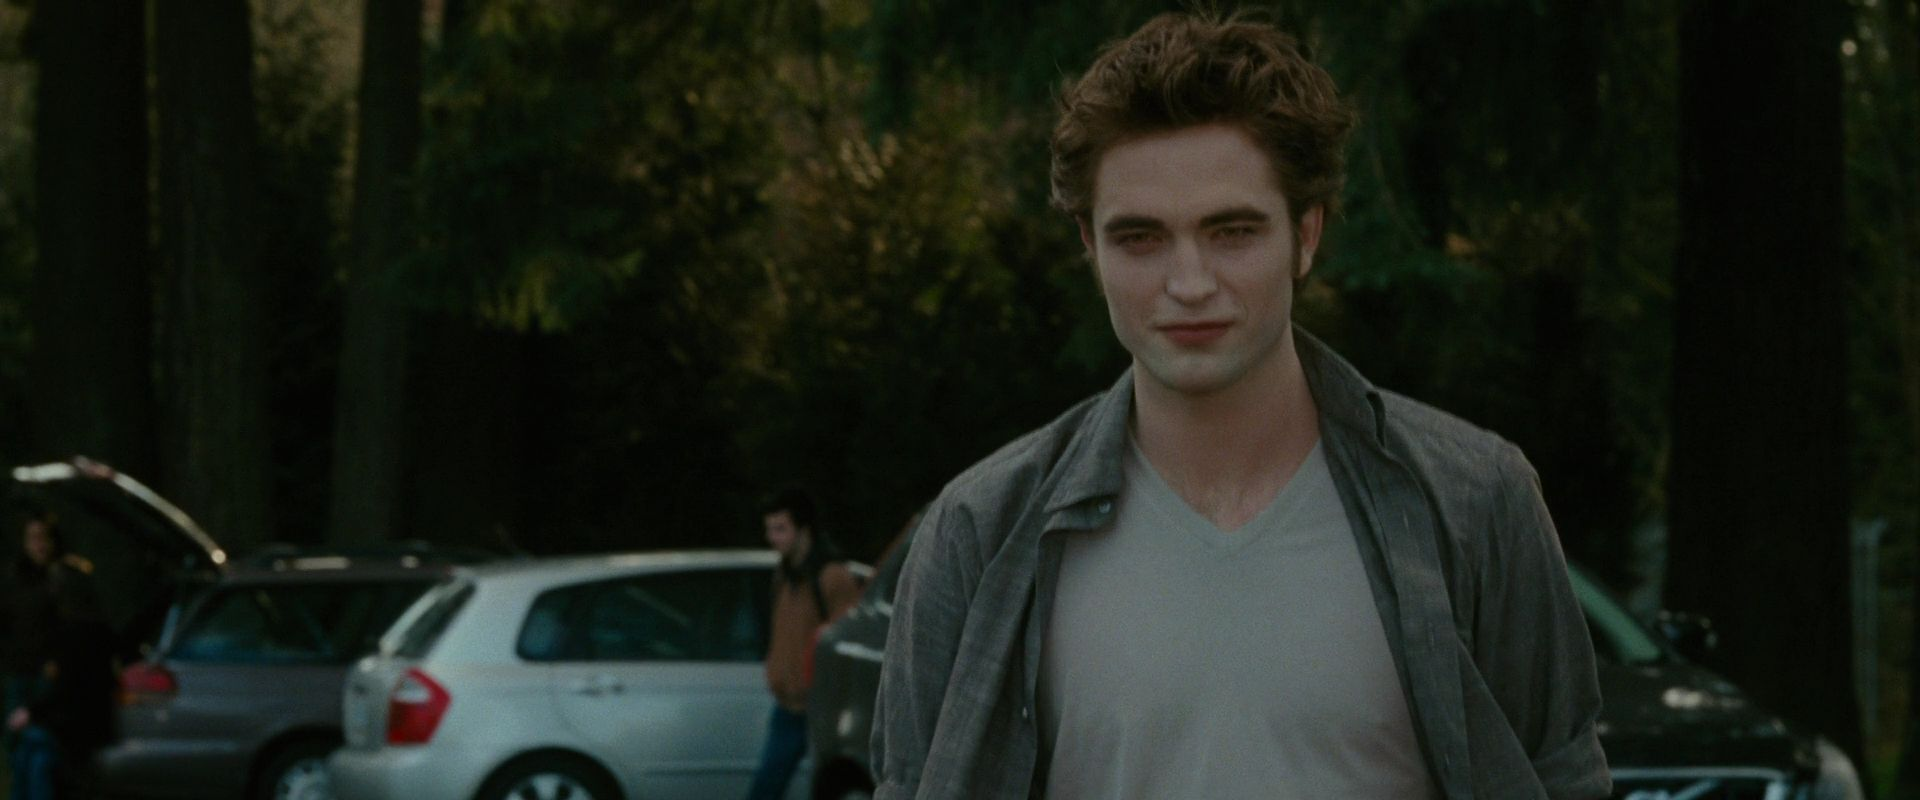 New Moon Screencaps Edward Cullen Image 15114495 Fanpop